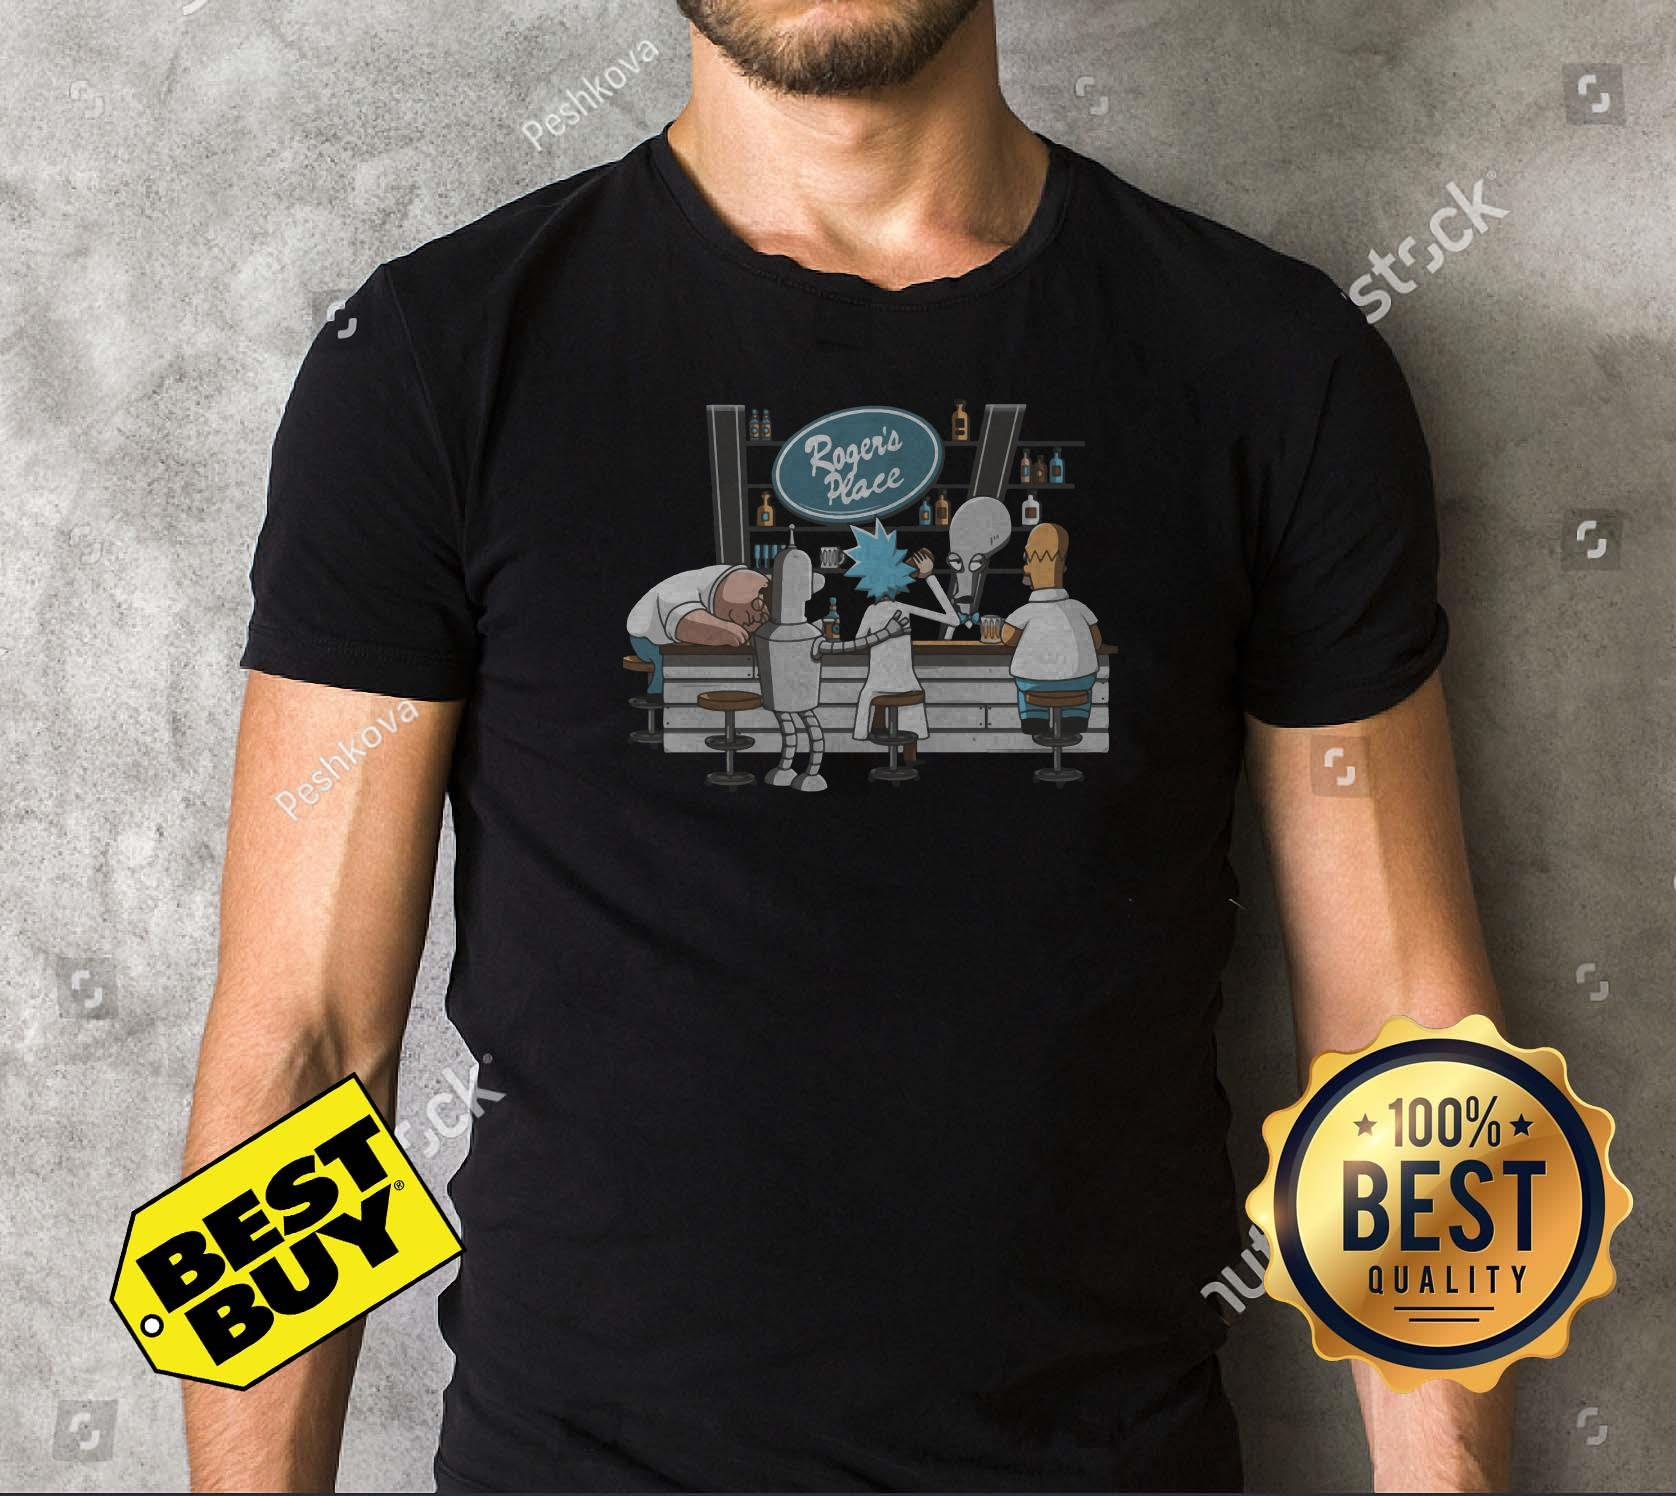 Rick Morty roger place shirt